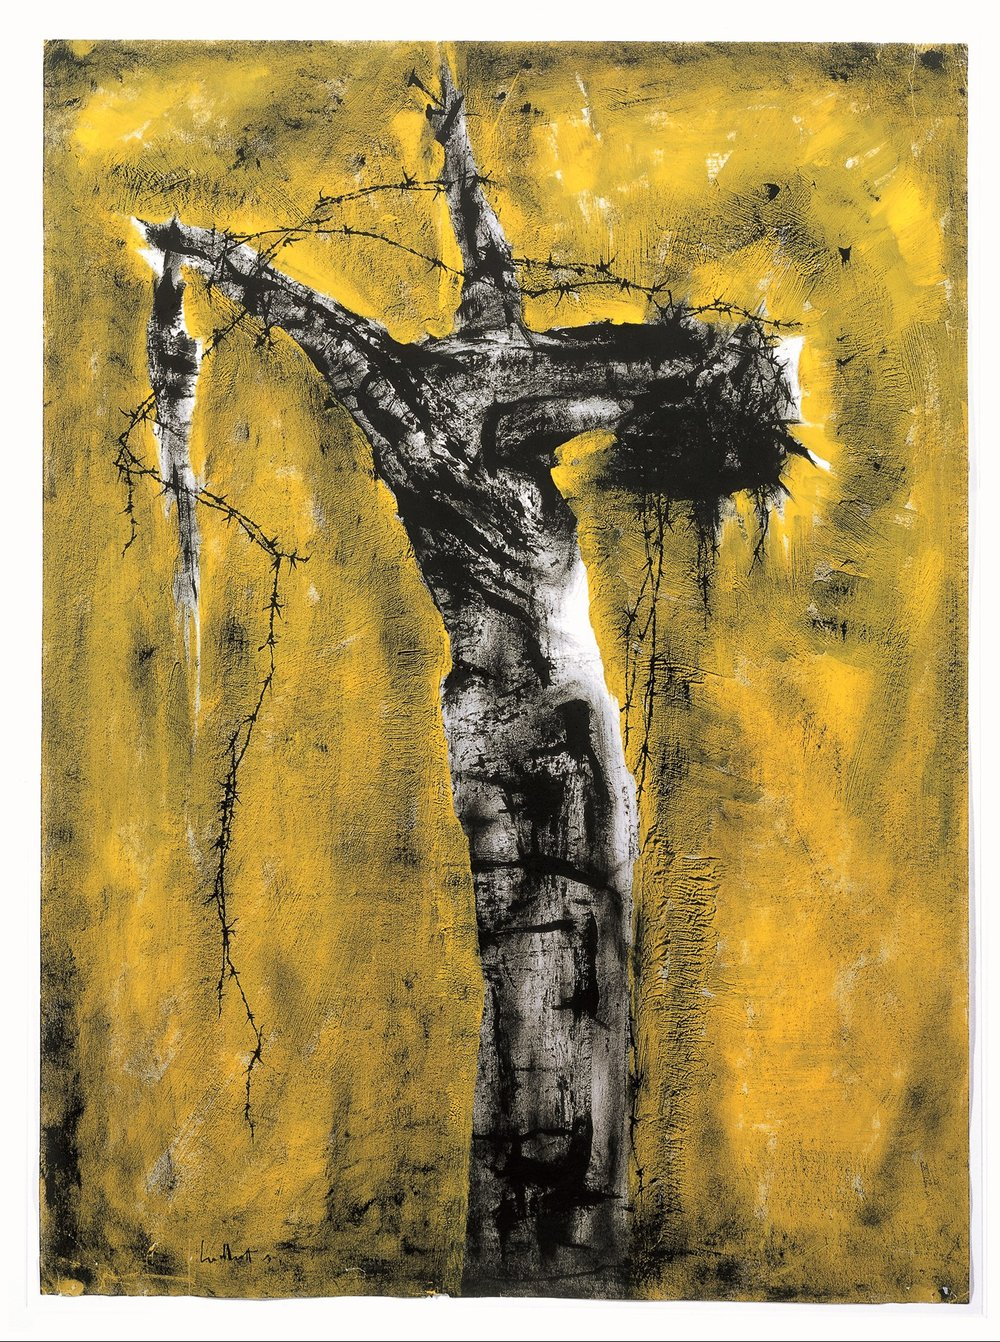 [Image:  Crucified Tree Form , by Theyre Lee-Elliott (1903-1988), 1963. Courtesy of Methodist Modern Art Collection,  http://www.methodist.org.uk/our-faith/reflecting-on-faith/the-methodist-modern-art-collection/index-of-works/crucified-tree-form-the-agony-theyre-lee-elliott/ ]